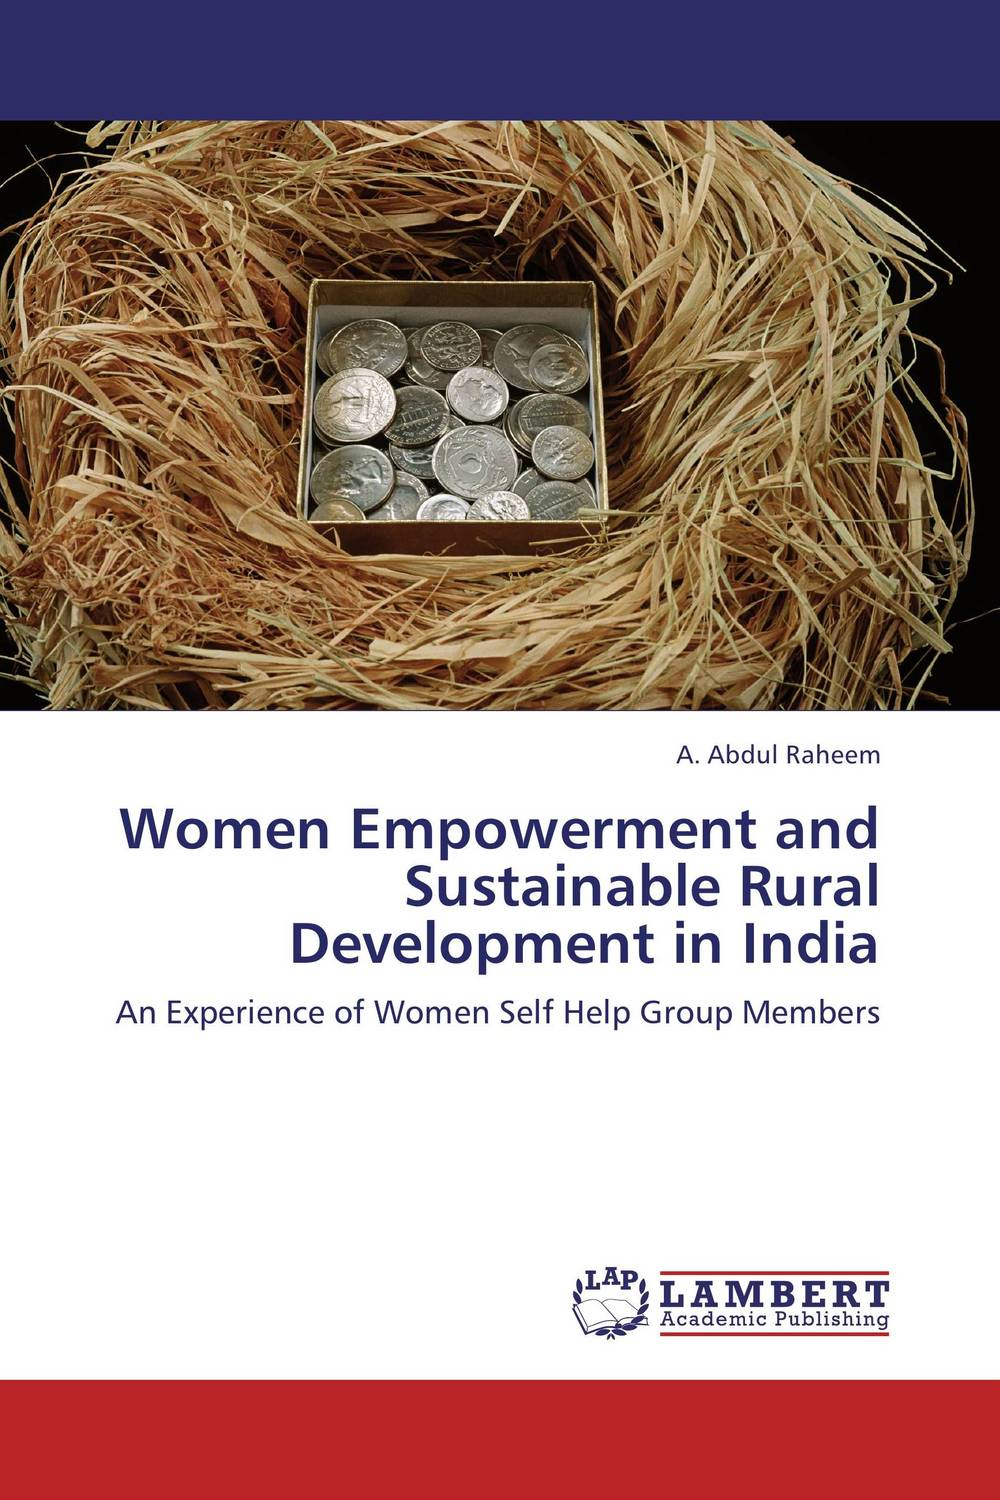 Women Empowerment and Sustainable Rural Development in India women empowerment through self help groups in rural areas